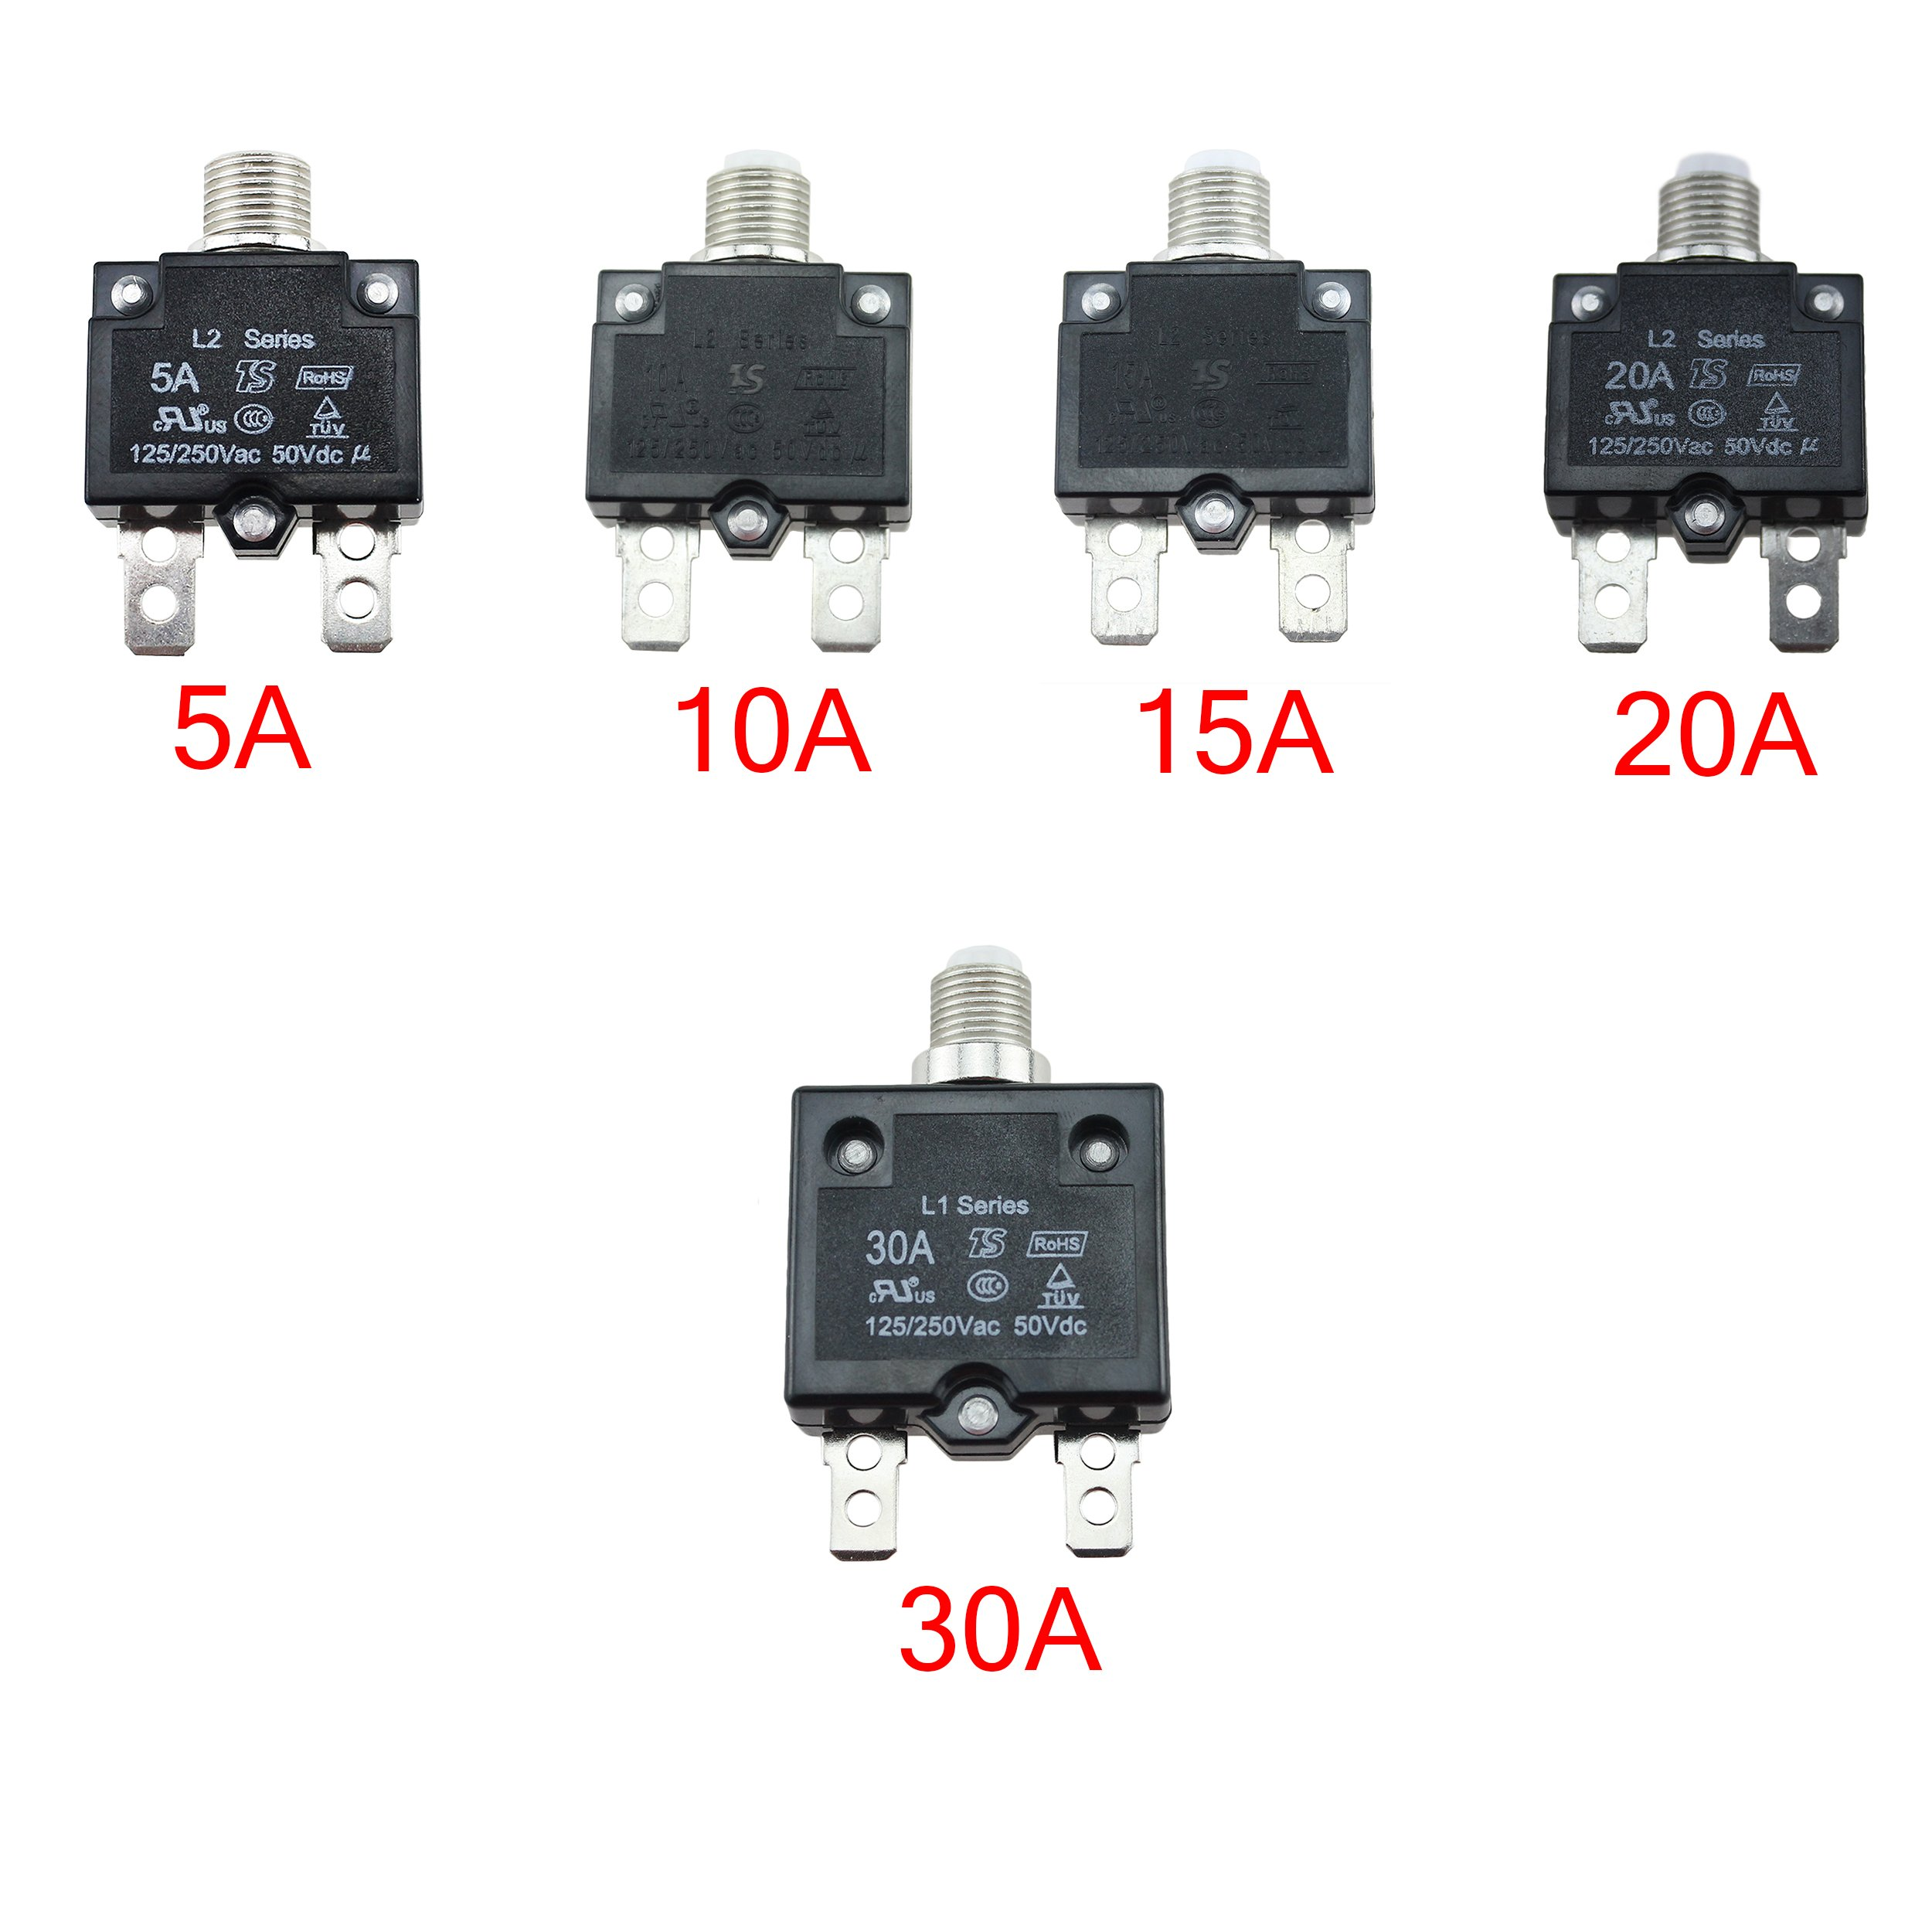 Iztoss 5pcs 5amp 10amp 15amp 20amp 30amp Circuit Breakers With 5 Amp Breaker Manual Reset Waterproof Button Transparent Cover Dc50v Ac125 250v Quick Connect